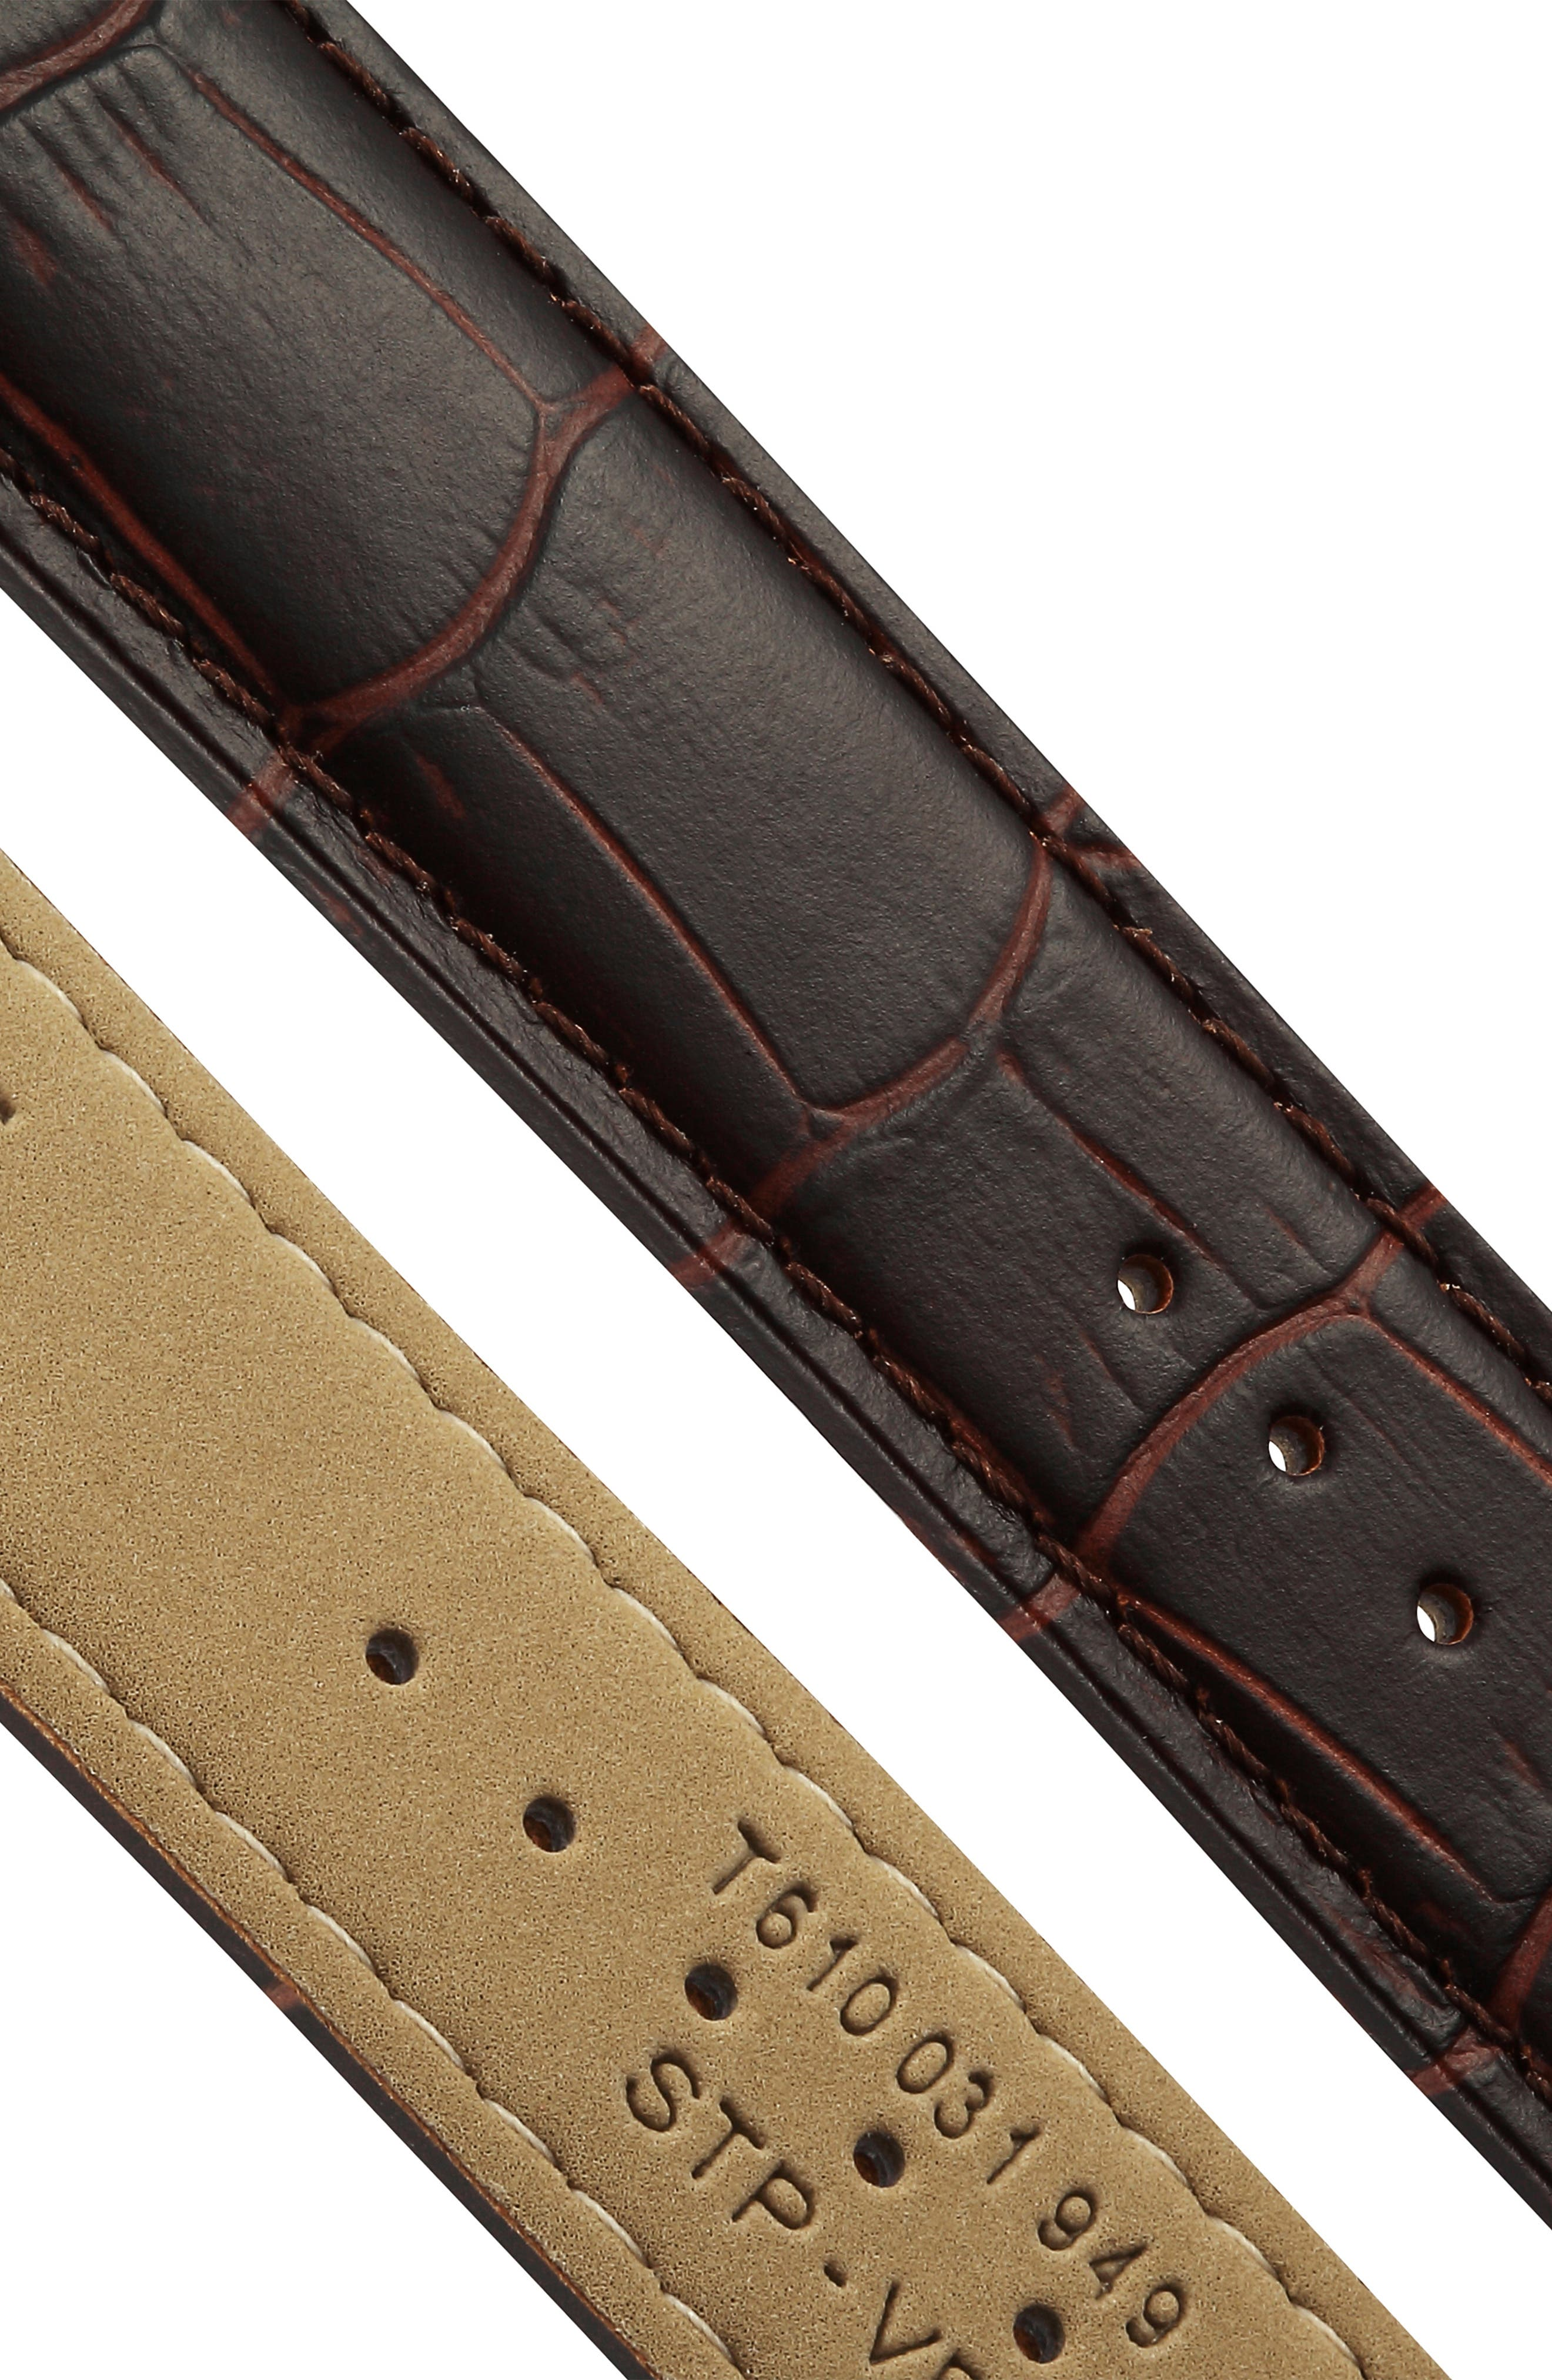 TISSOT, Tradition Leather Strap Watch, 42mm, Alternate thumbnail 5, color, BROWN/ SILVER